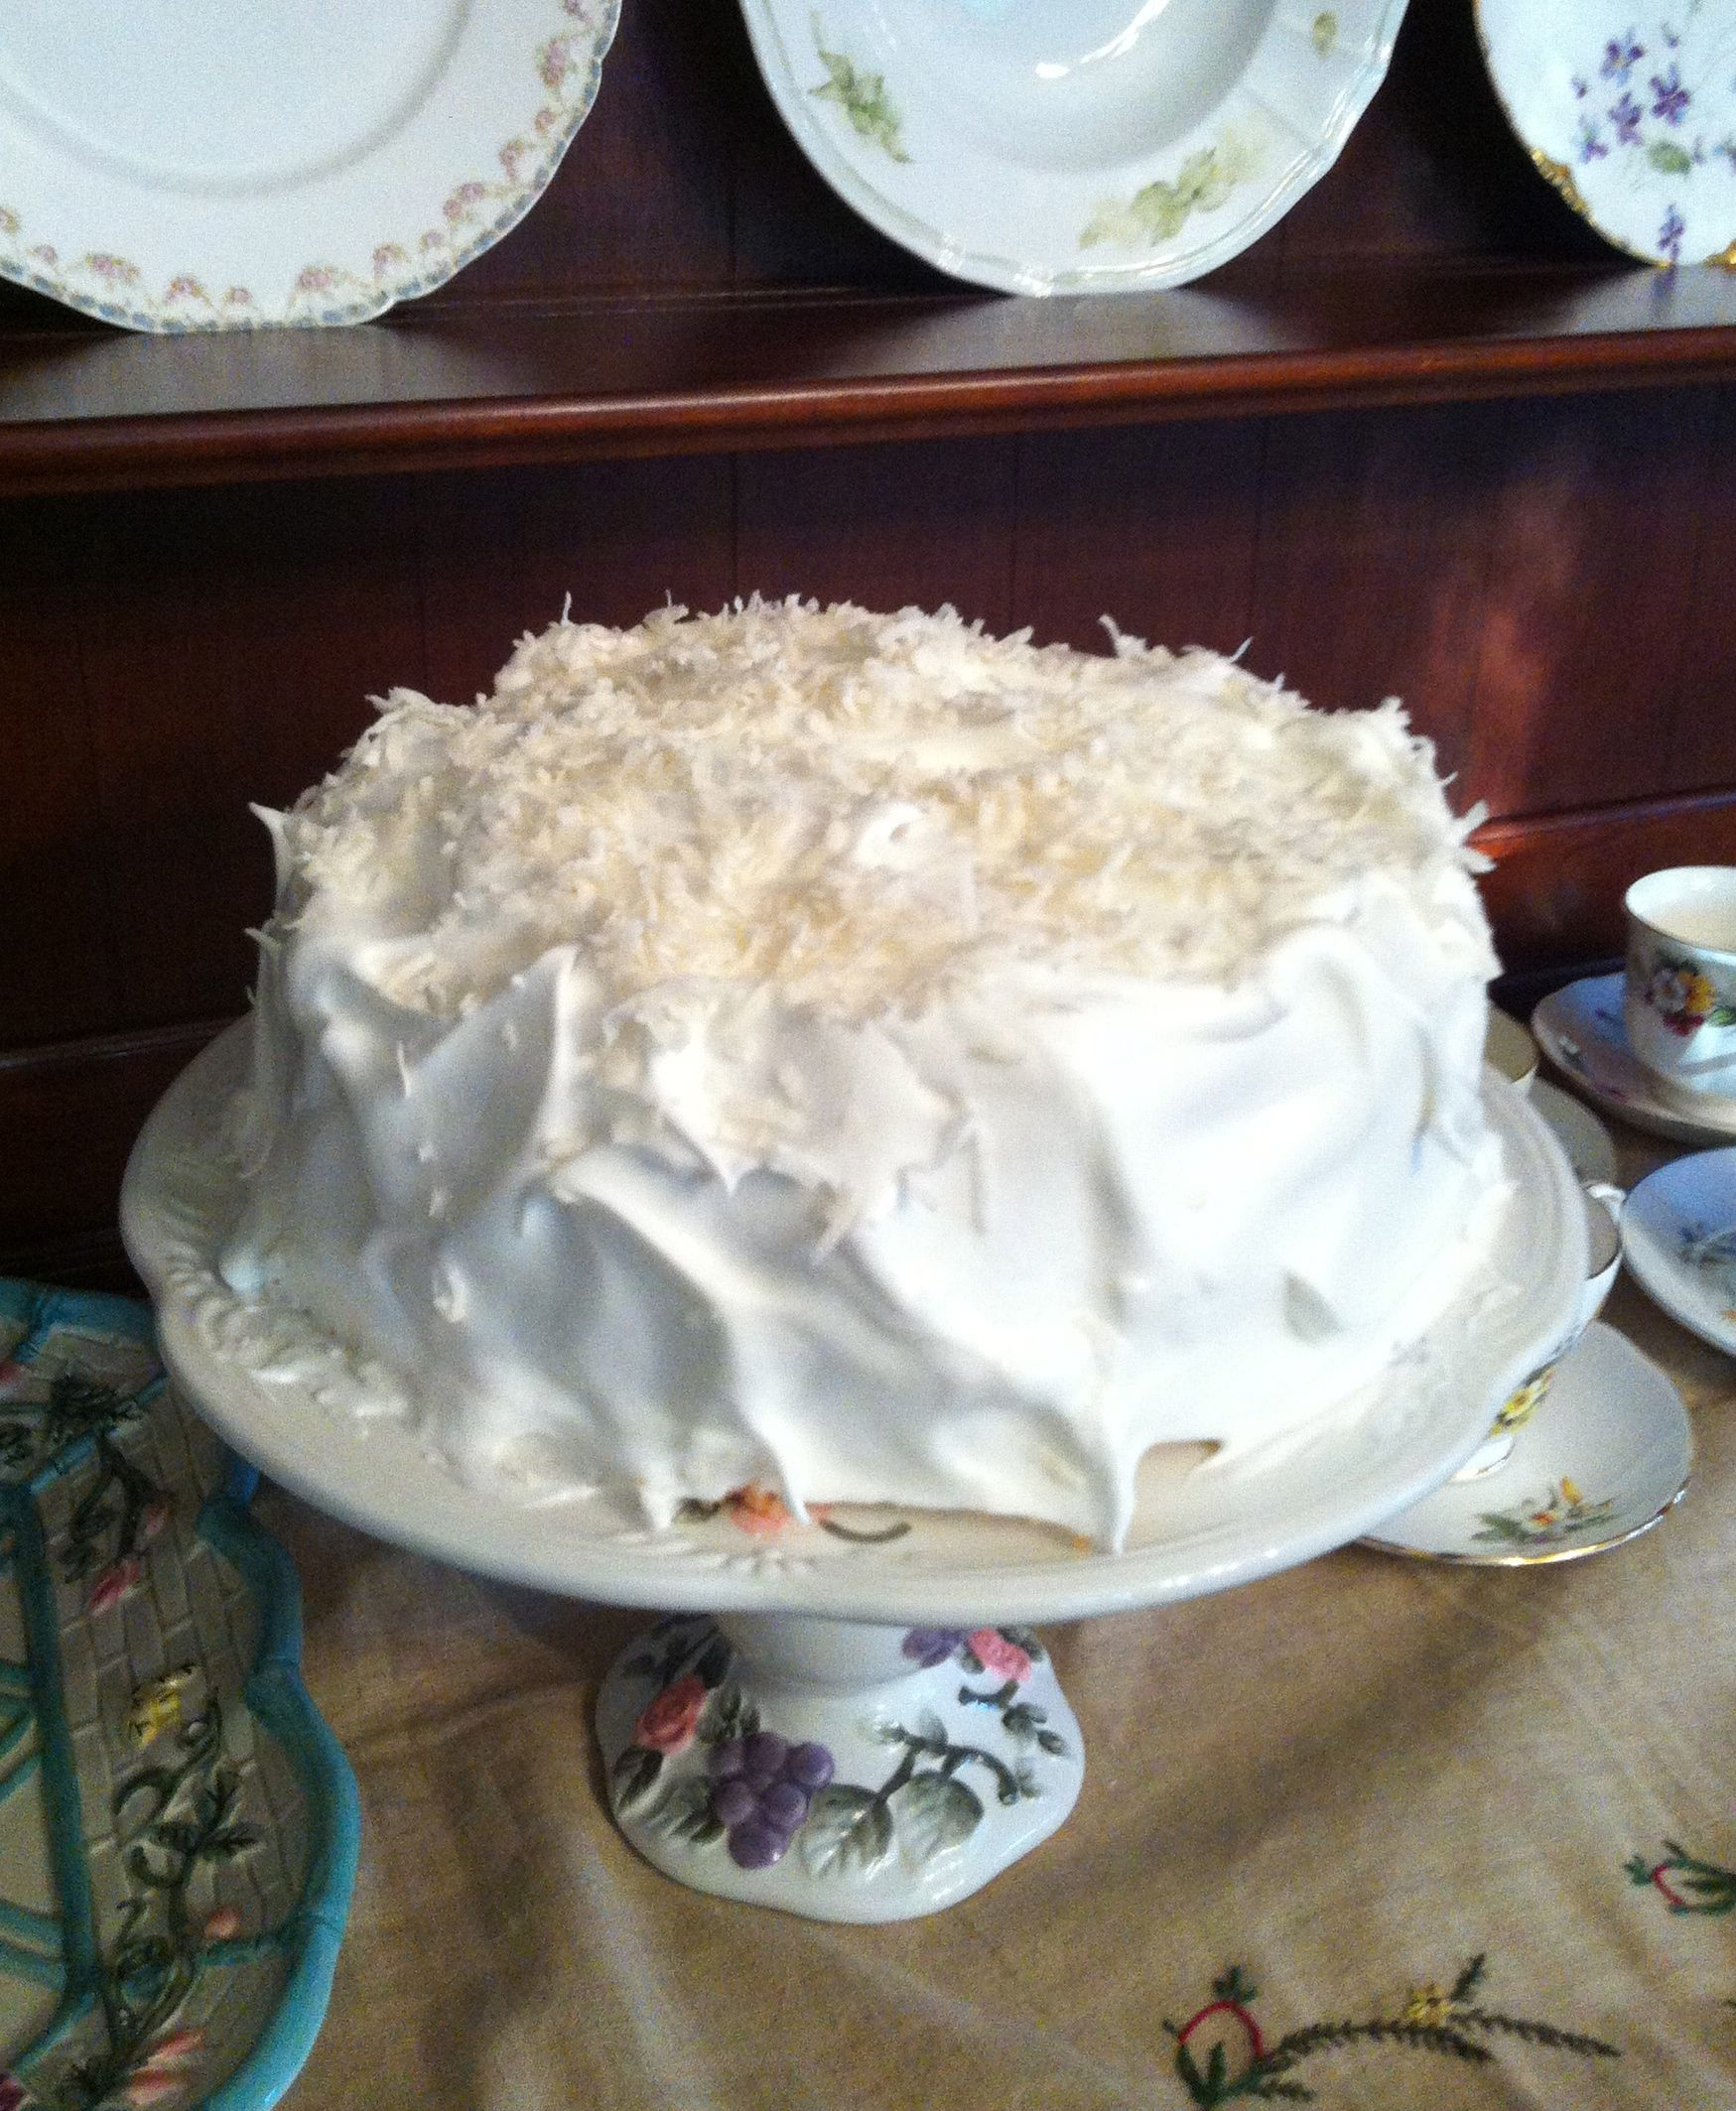 Coconut layer cake made for my seventh birthday.